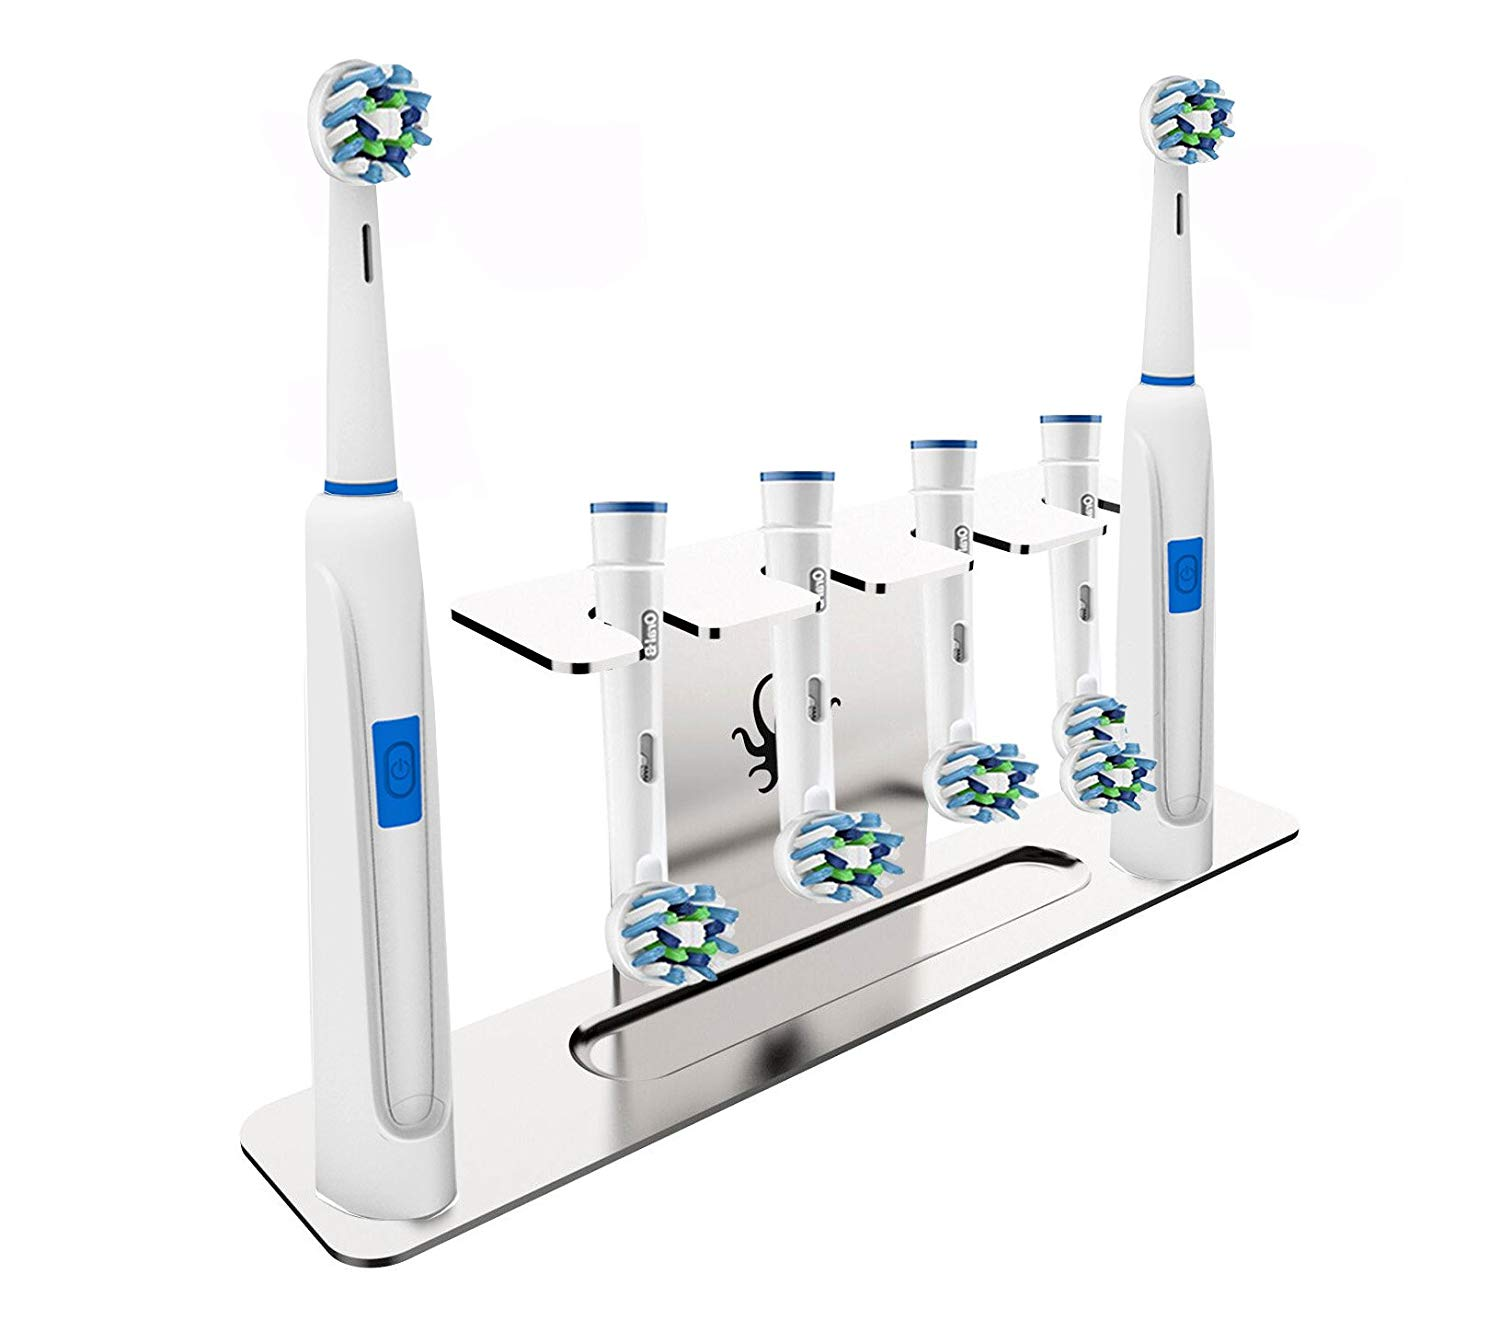 OCTOPODIS - Stainless Steel Electric Toothbrush Holder & Electric Toothbrush Heads Holder (Head Stand), Compatible with ORALB Braun, Adhesive or Free-Standing Installation